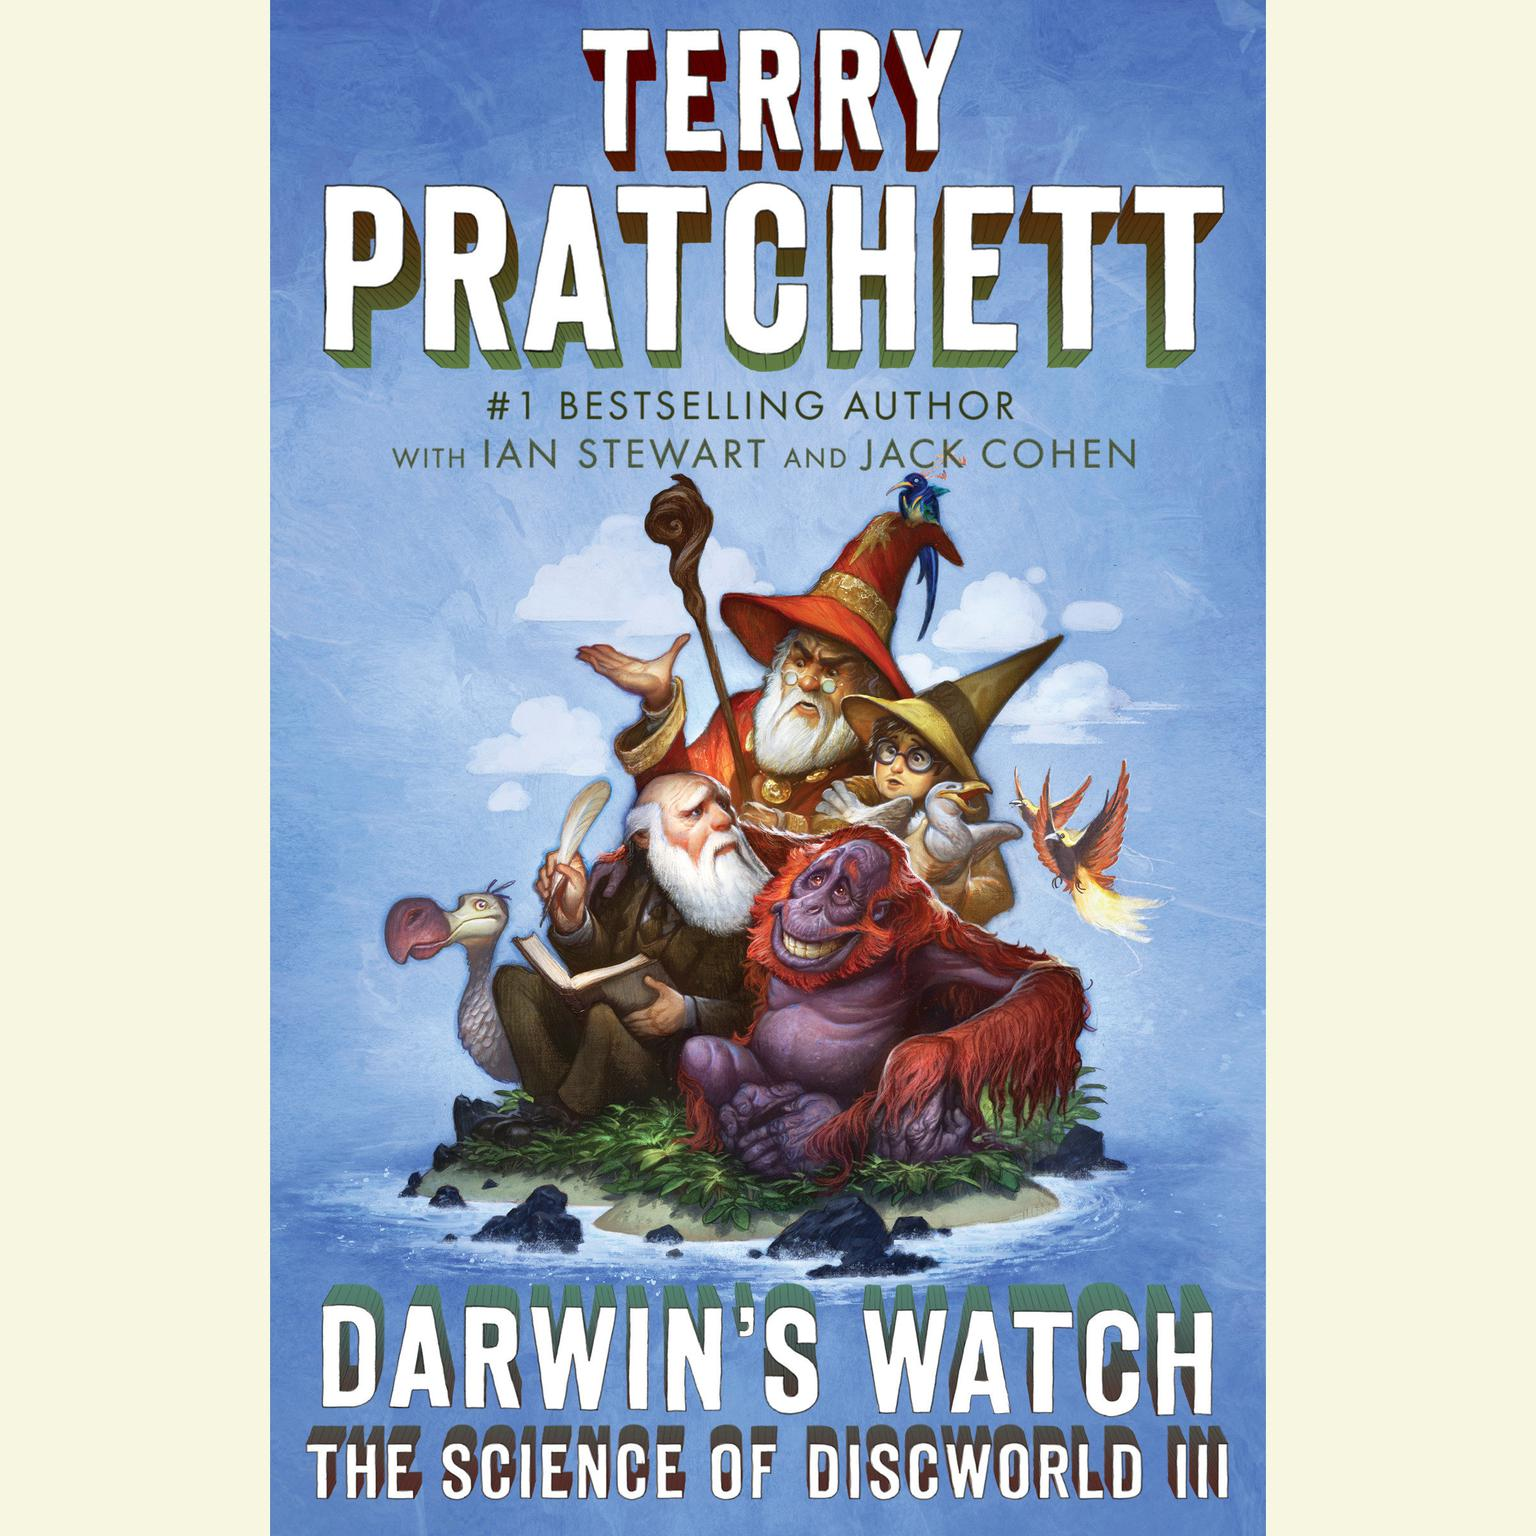 Printable Darwin's Watch: The Science of Discworld III: A Novel Audiobook Cover Art